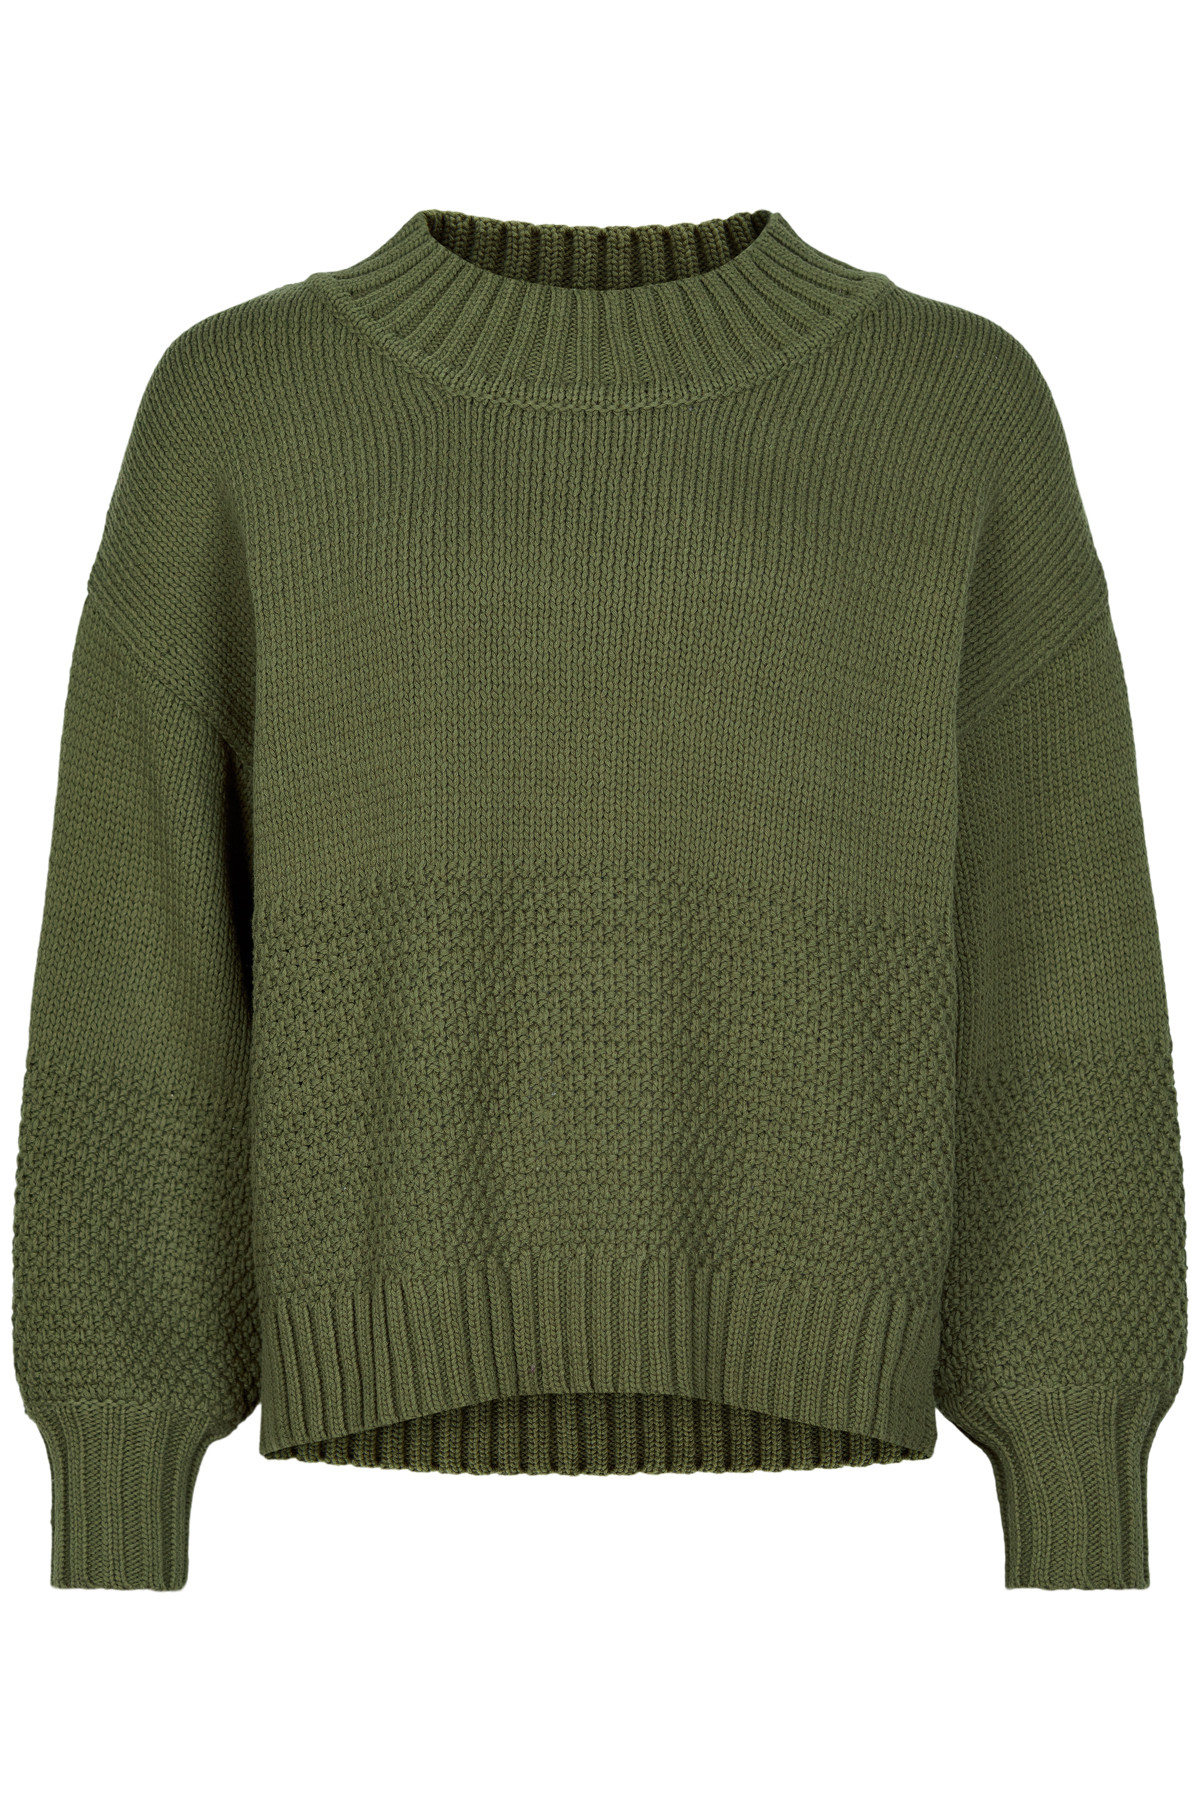 Image of   AND LESS ALANIESE PULLOVER 5120203 I (Ivy Green, S)